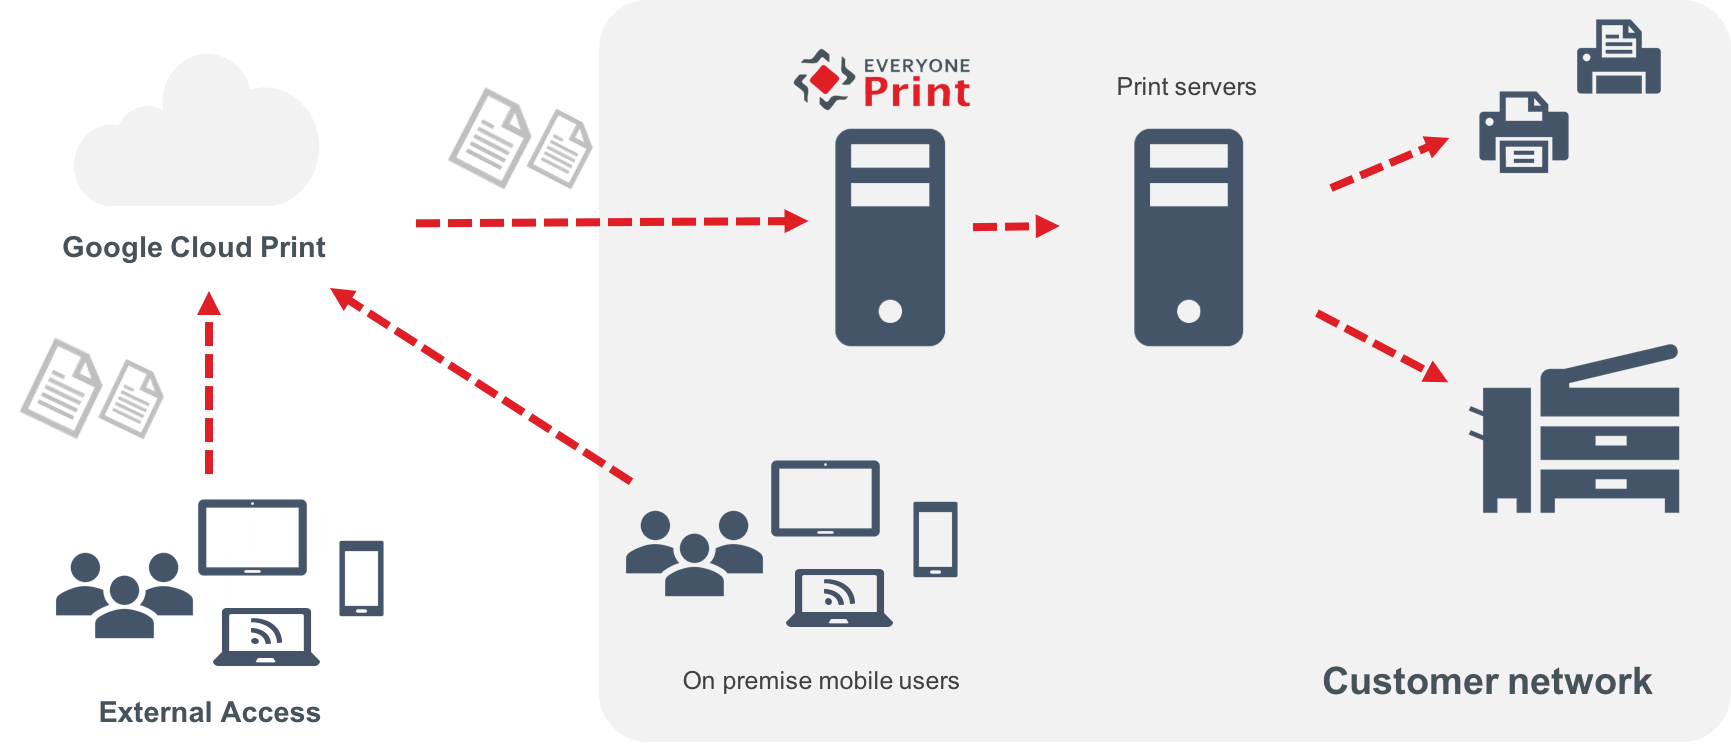 EveryonePrint et Google Cloud Print